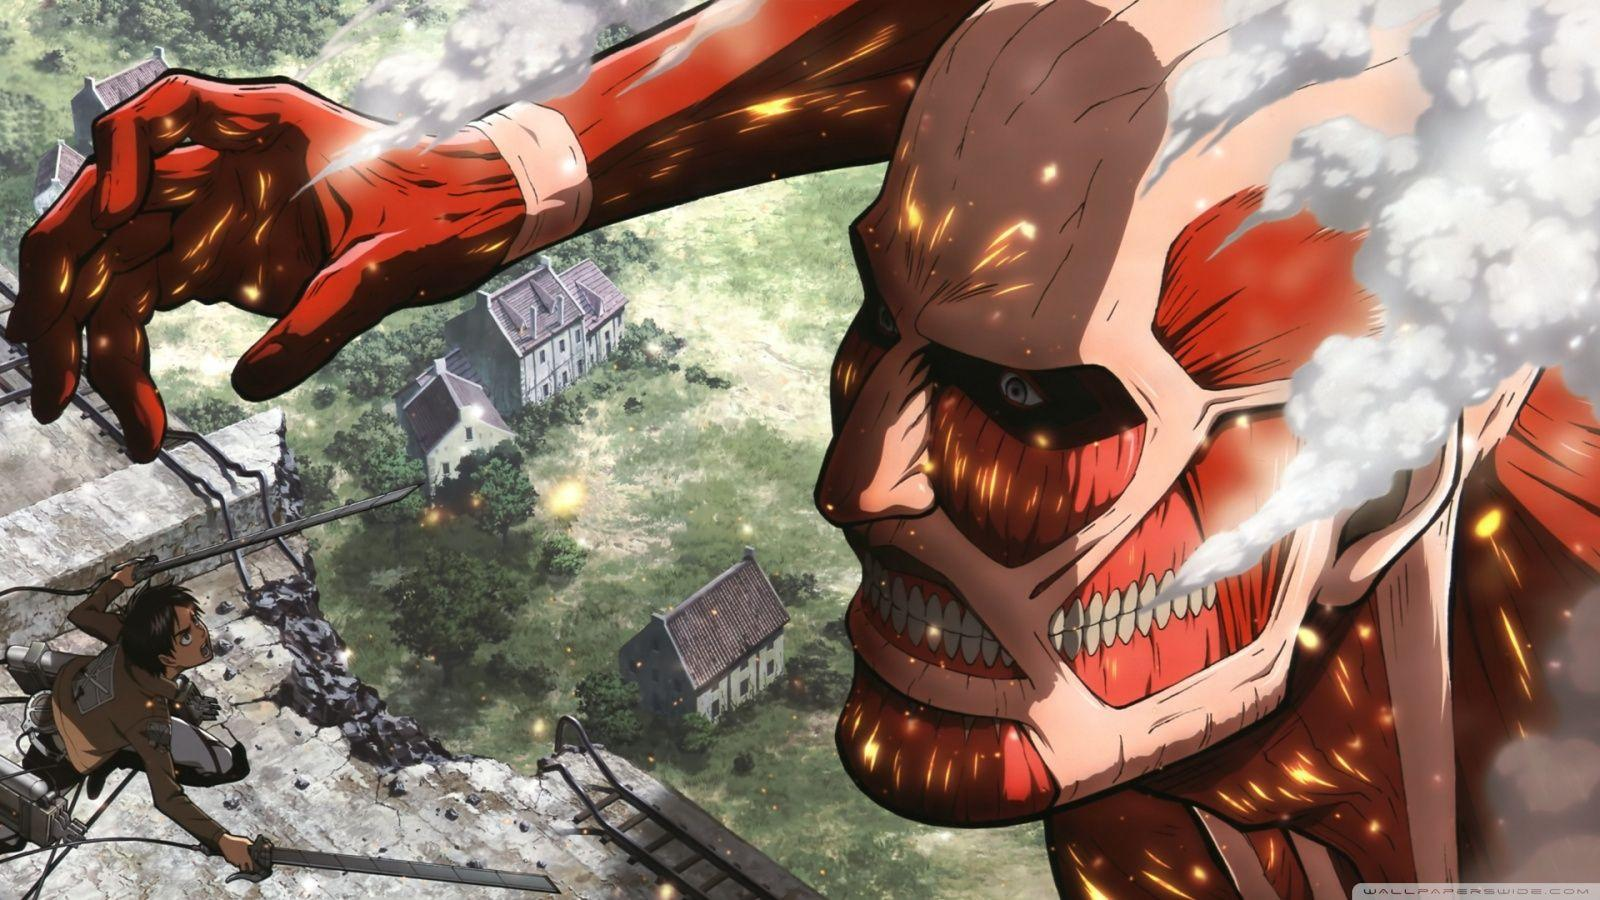 Attack On Titan HD desktop wallpapers : Widescreen : High